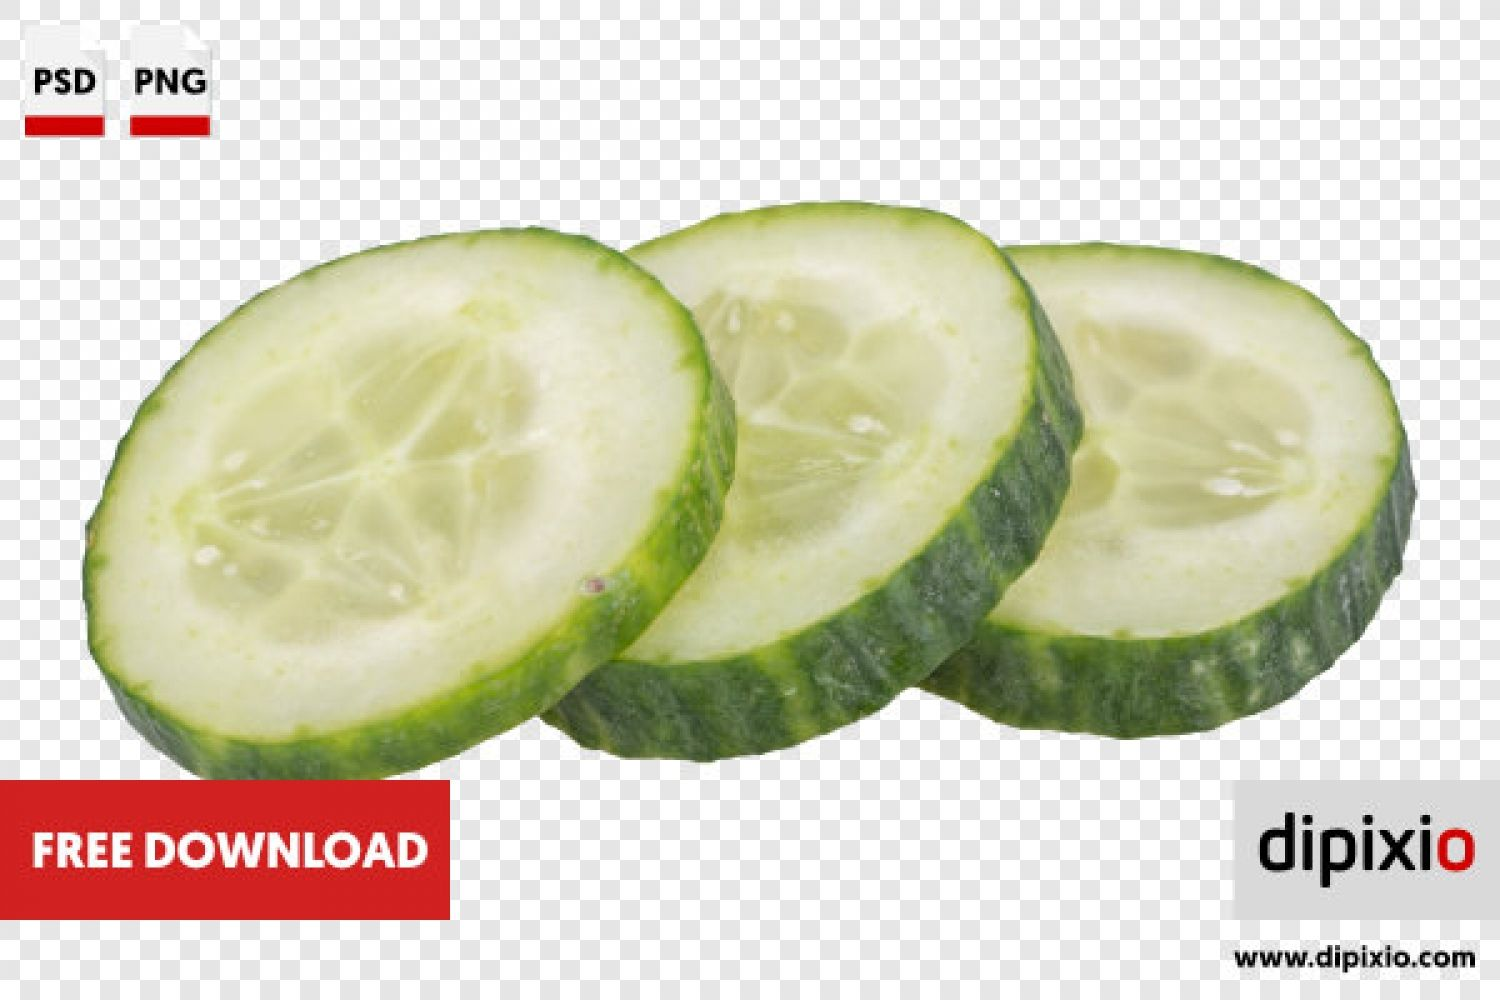 Free Photo Of Slices Of Cucumber For Download On Www Dipixio Com Dipixio Freephoto Freebie Free Photo Freedownload Stockph Free Photos Photo Free Images